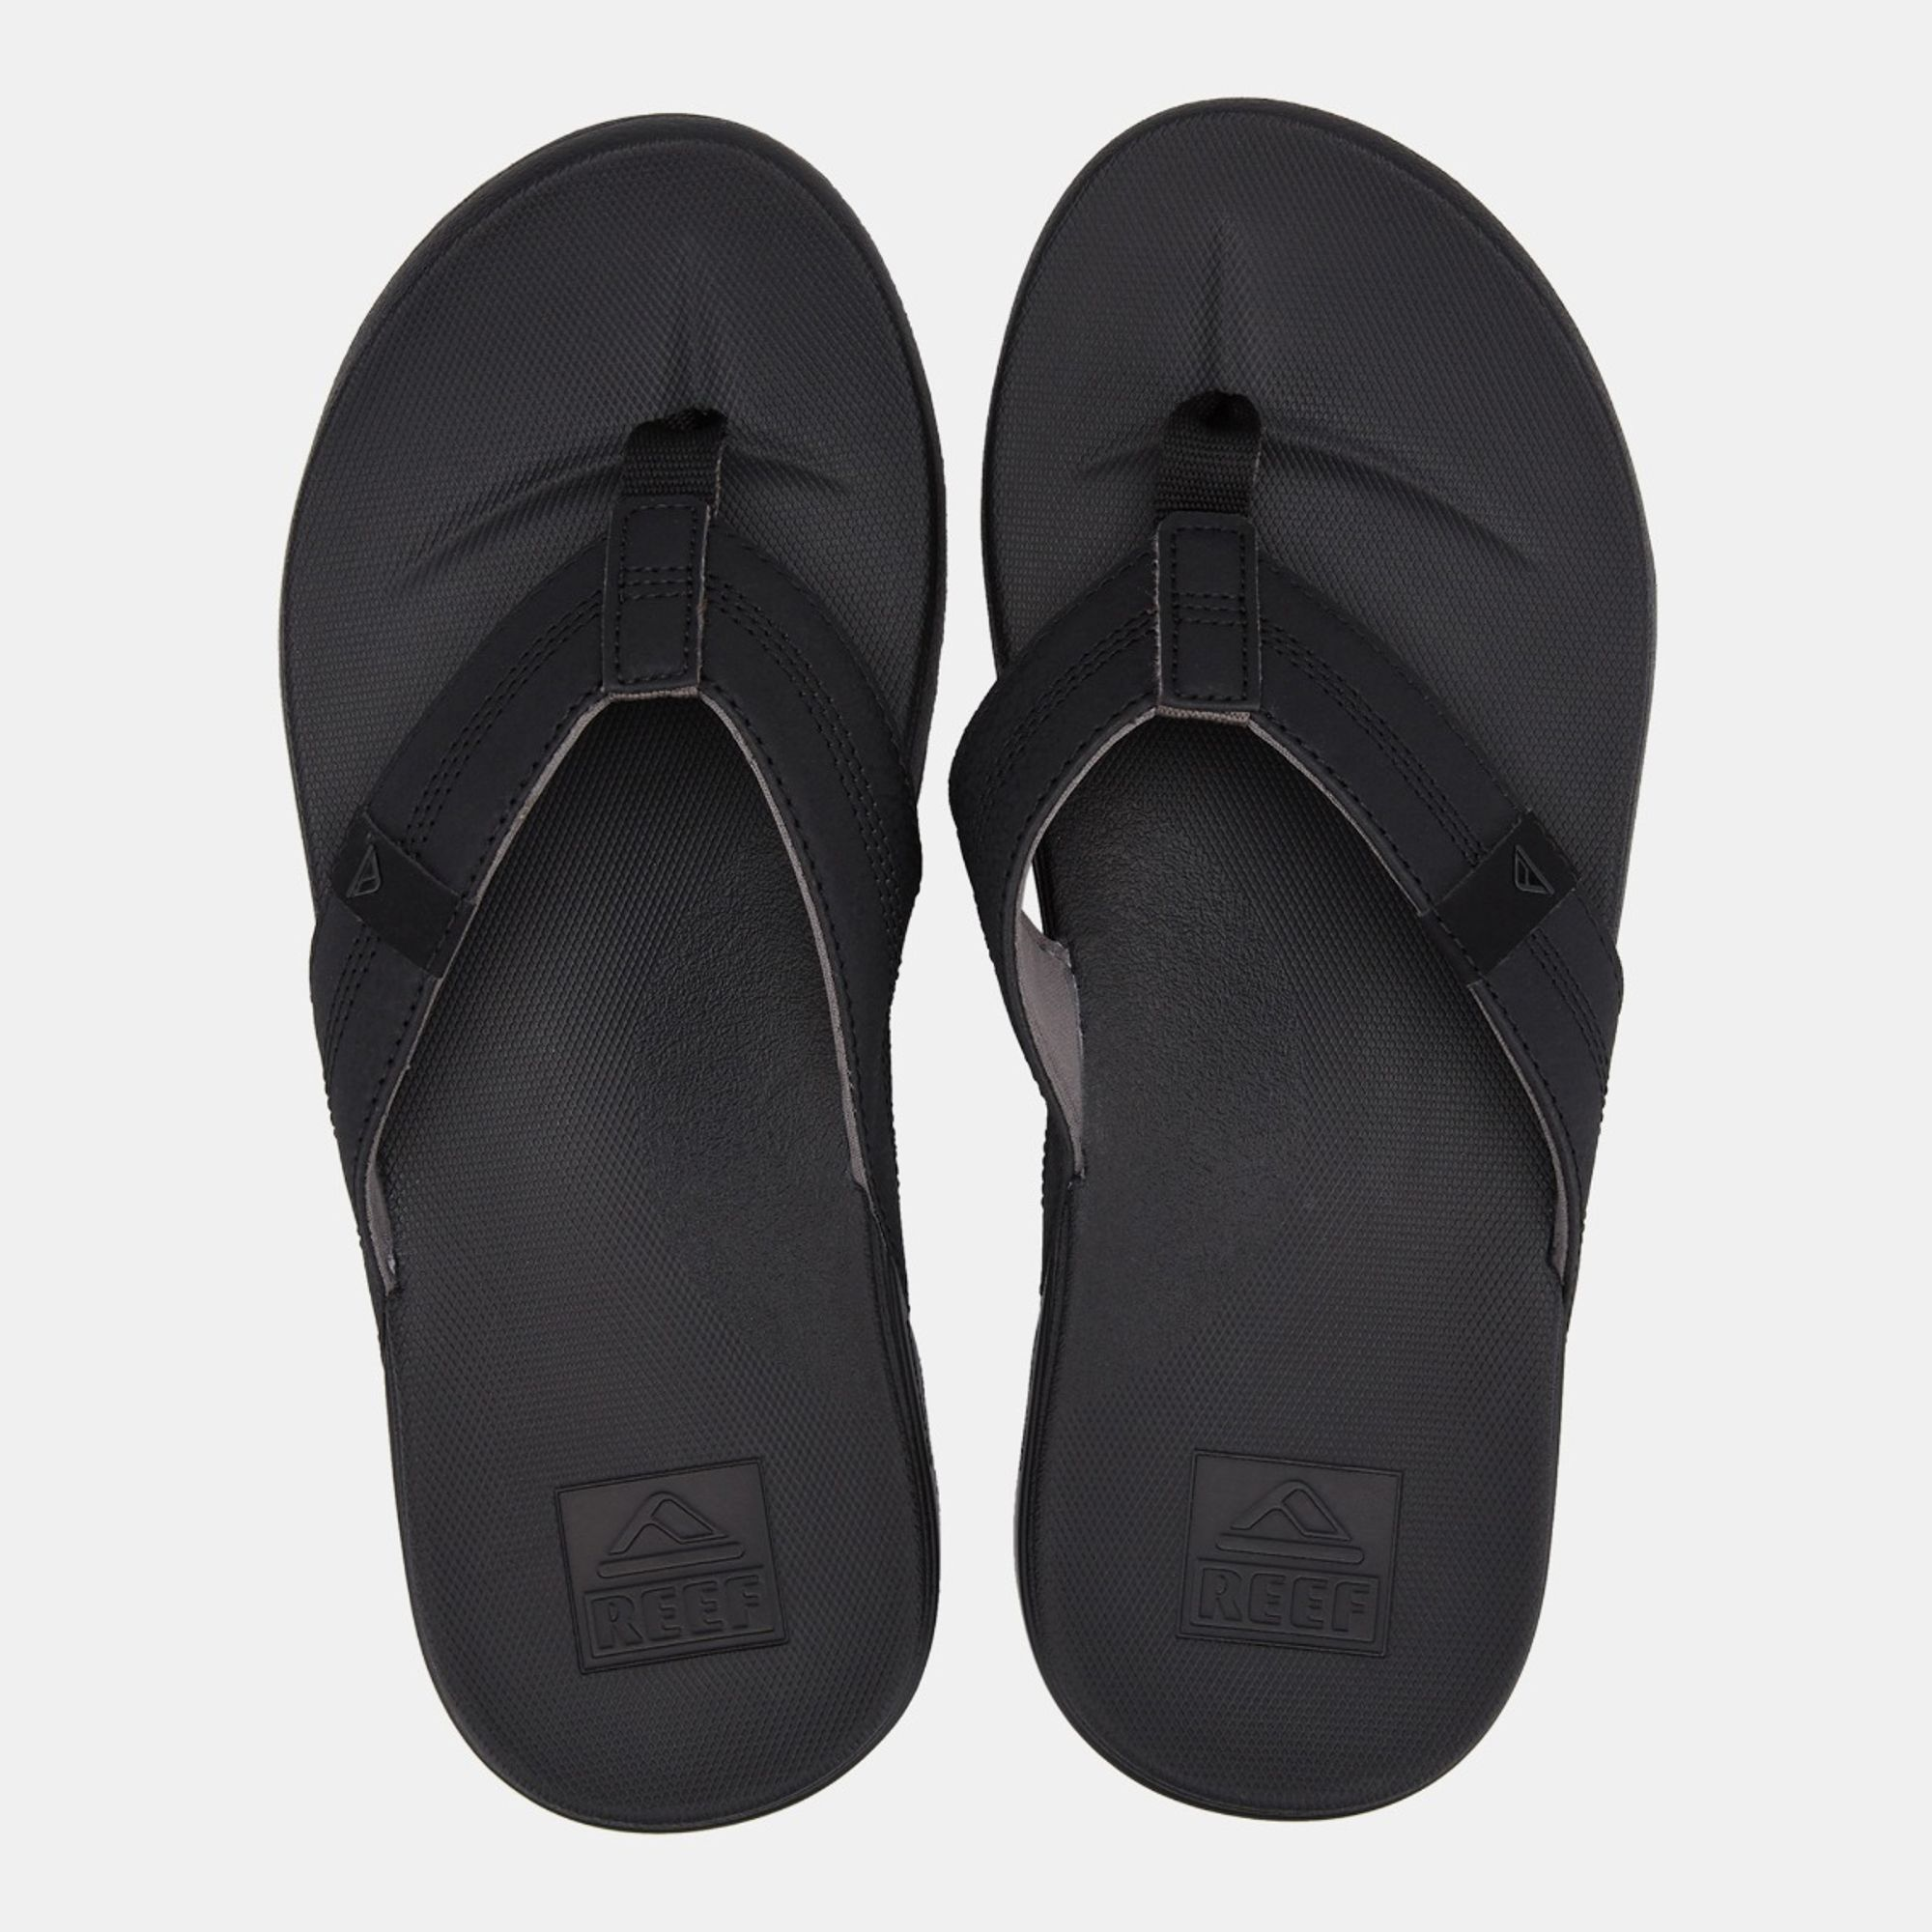 undefeated x details for casual shoes Reef Men's Cushion Bounce Phantom Flip Flops | Sandals | Sandals ...